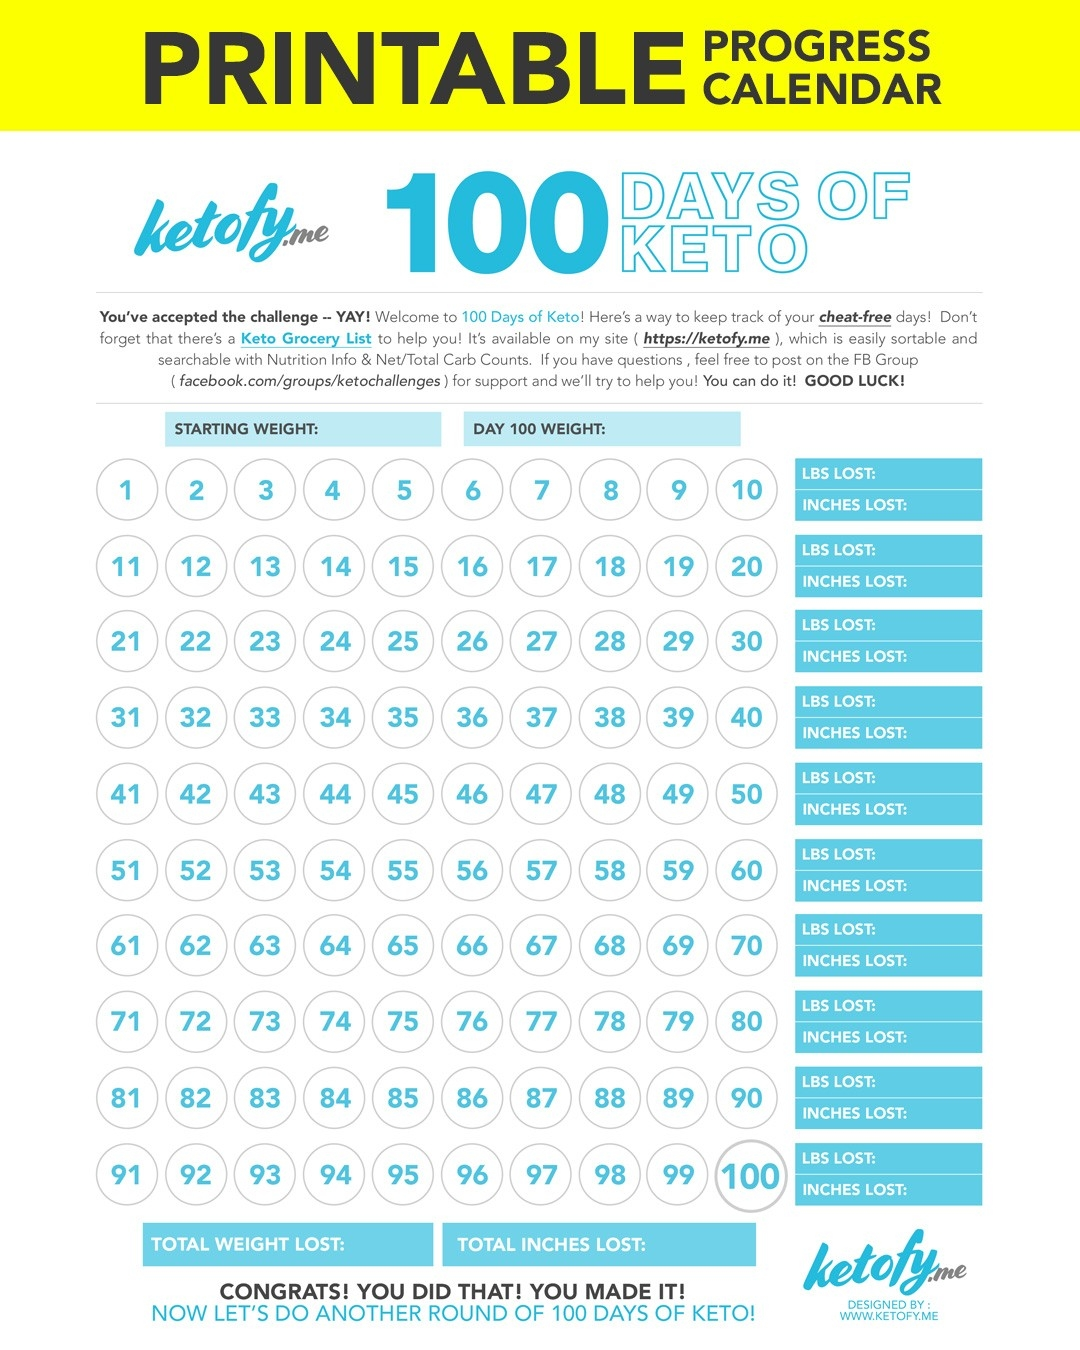 Keto ~ Fy Me | Cut Carbs, Not Flavor! • 100 Days Of Keto-Blank Countdown Calendar 50 Days